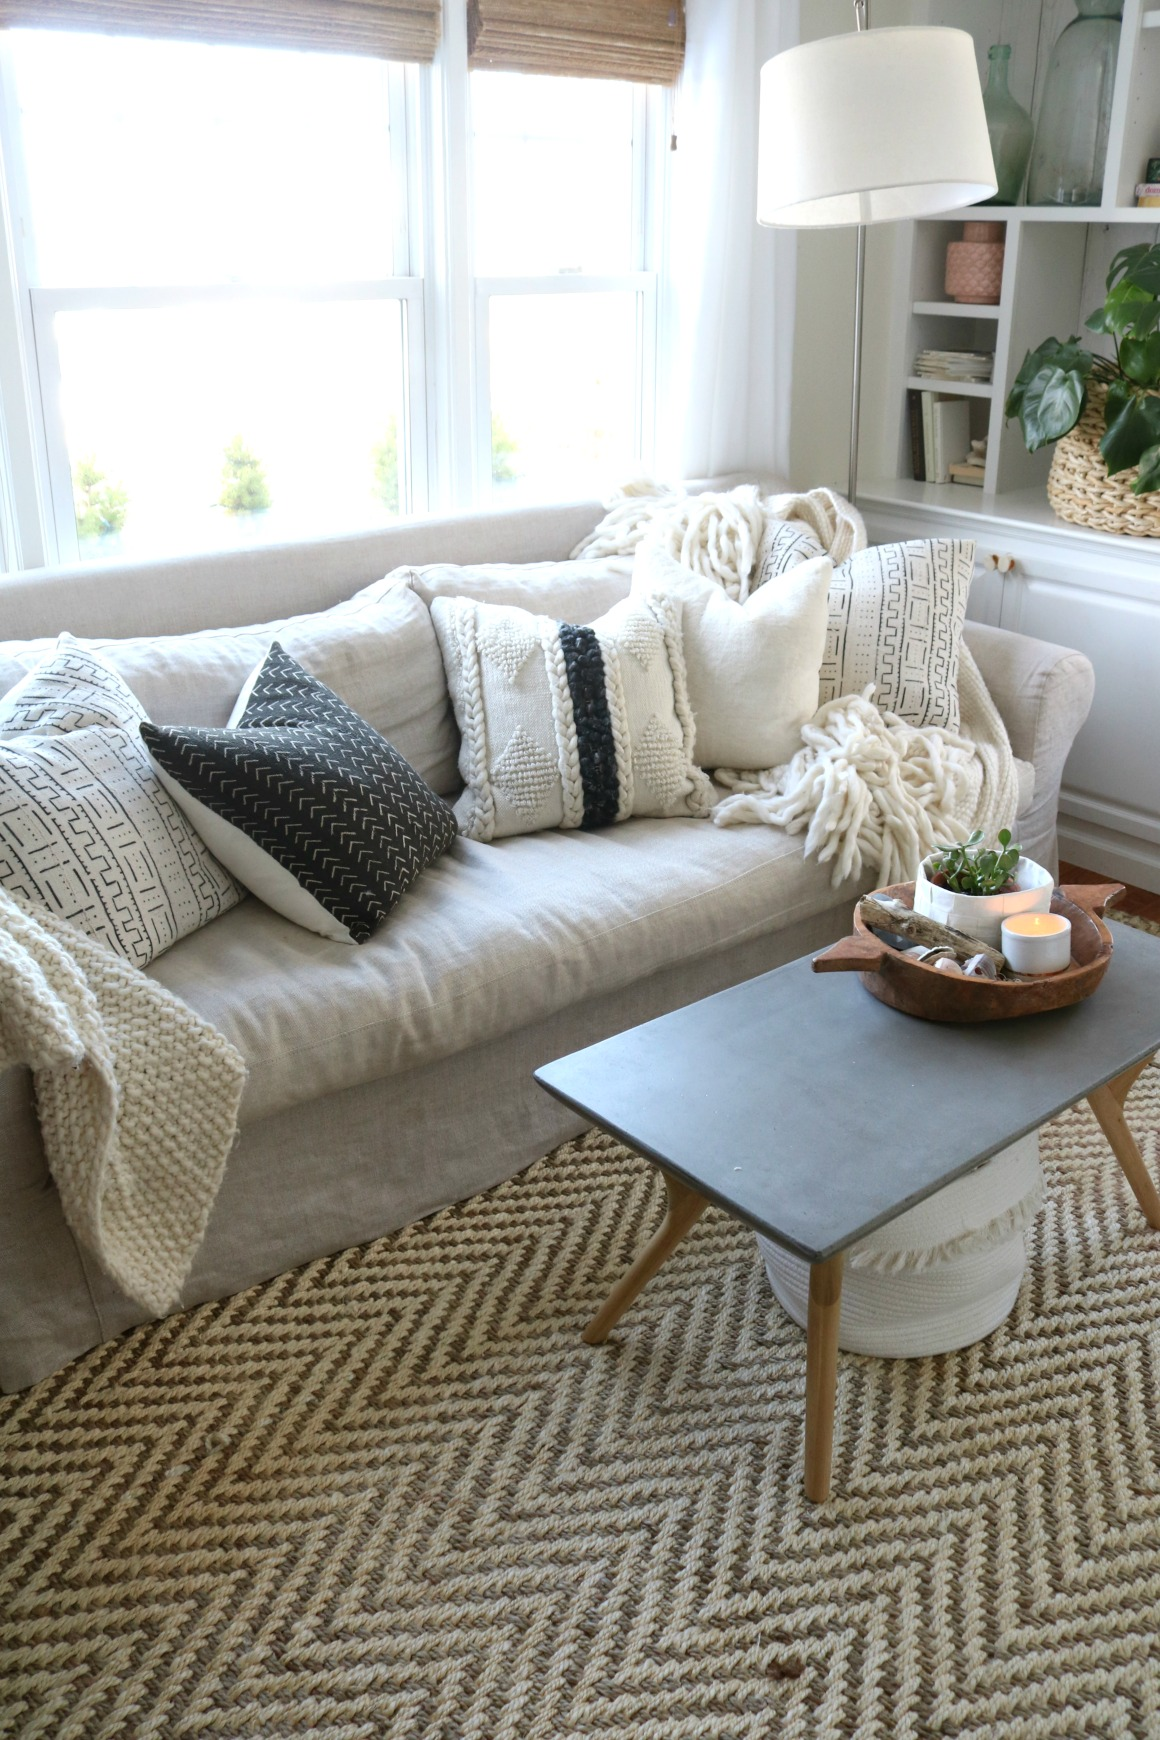 How to Mix Pillow Patterns like a Pro!